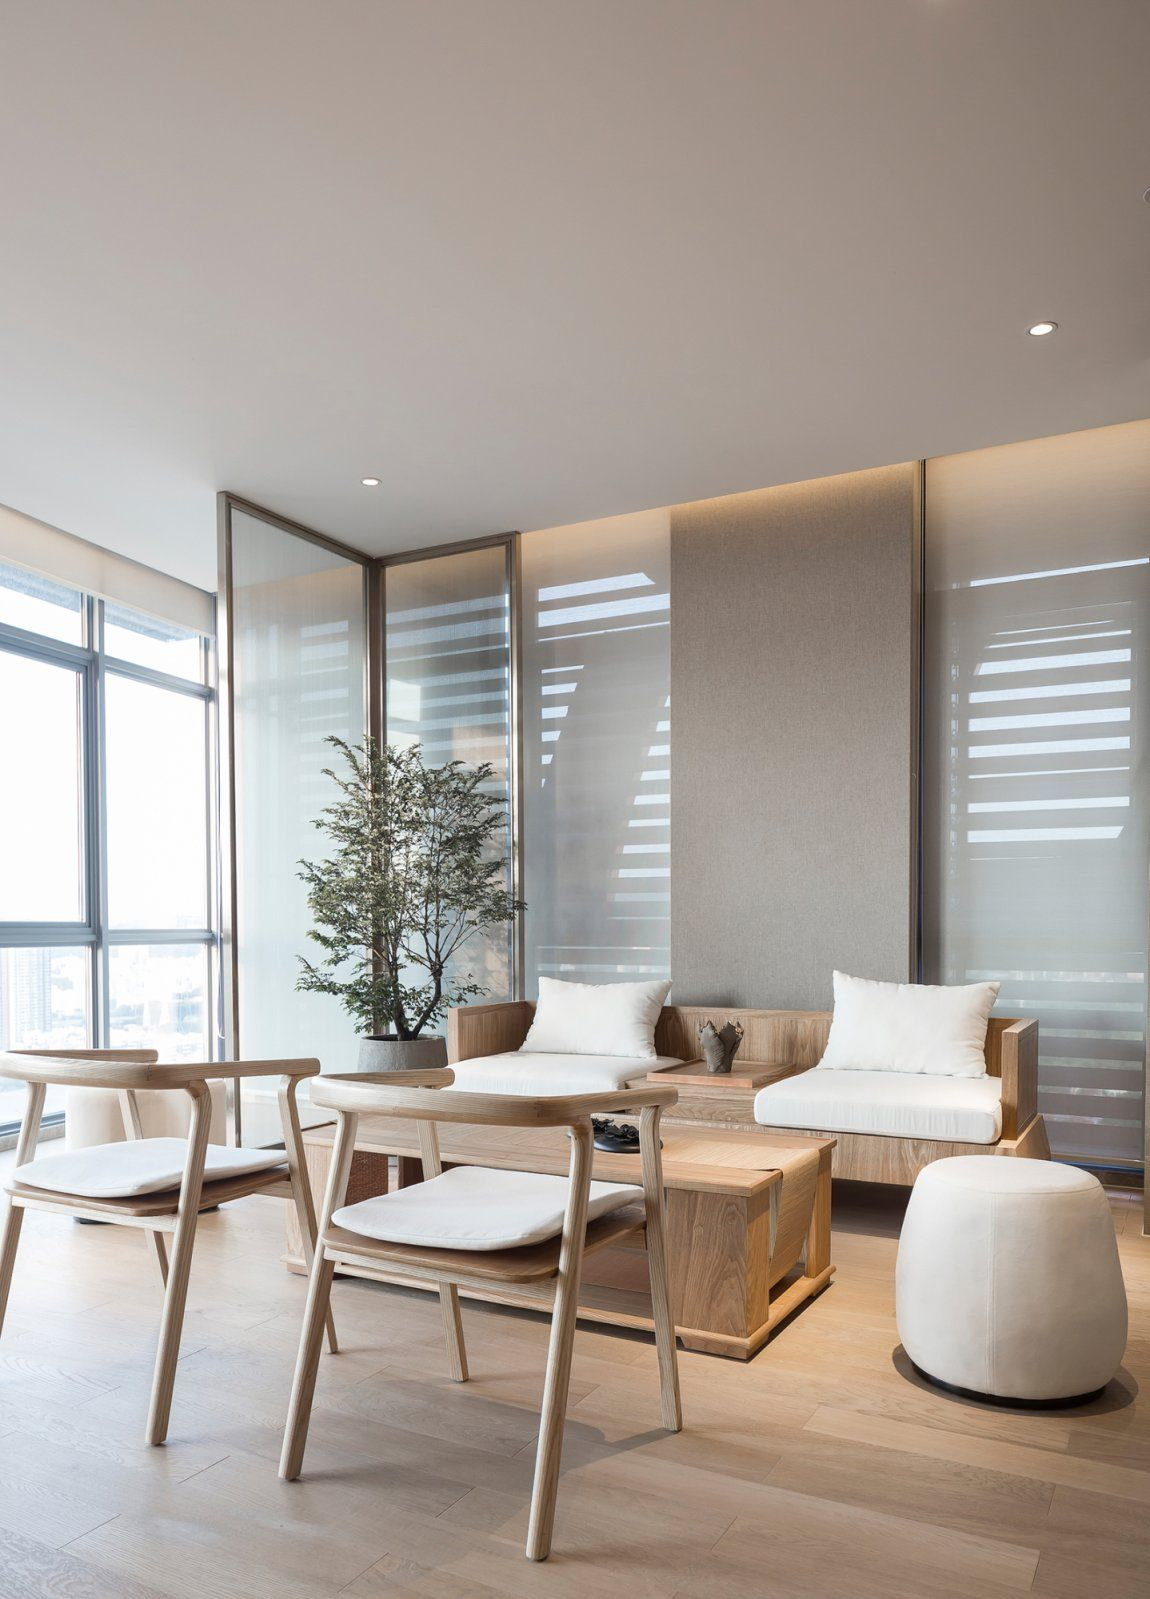 Minimalist House 85 Design: Shenzhen ZhongJing · Financial Innovation Center By PleasantHouse – Aasarchitecture